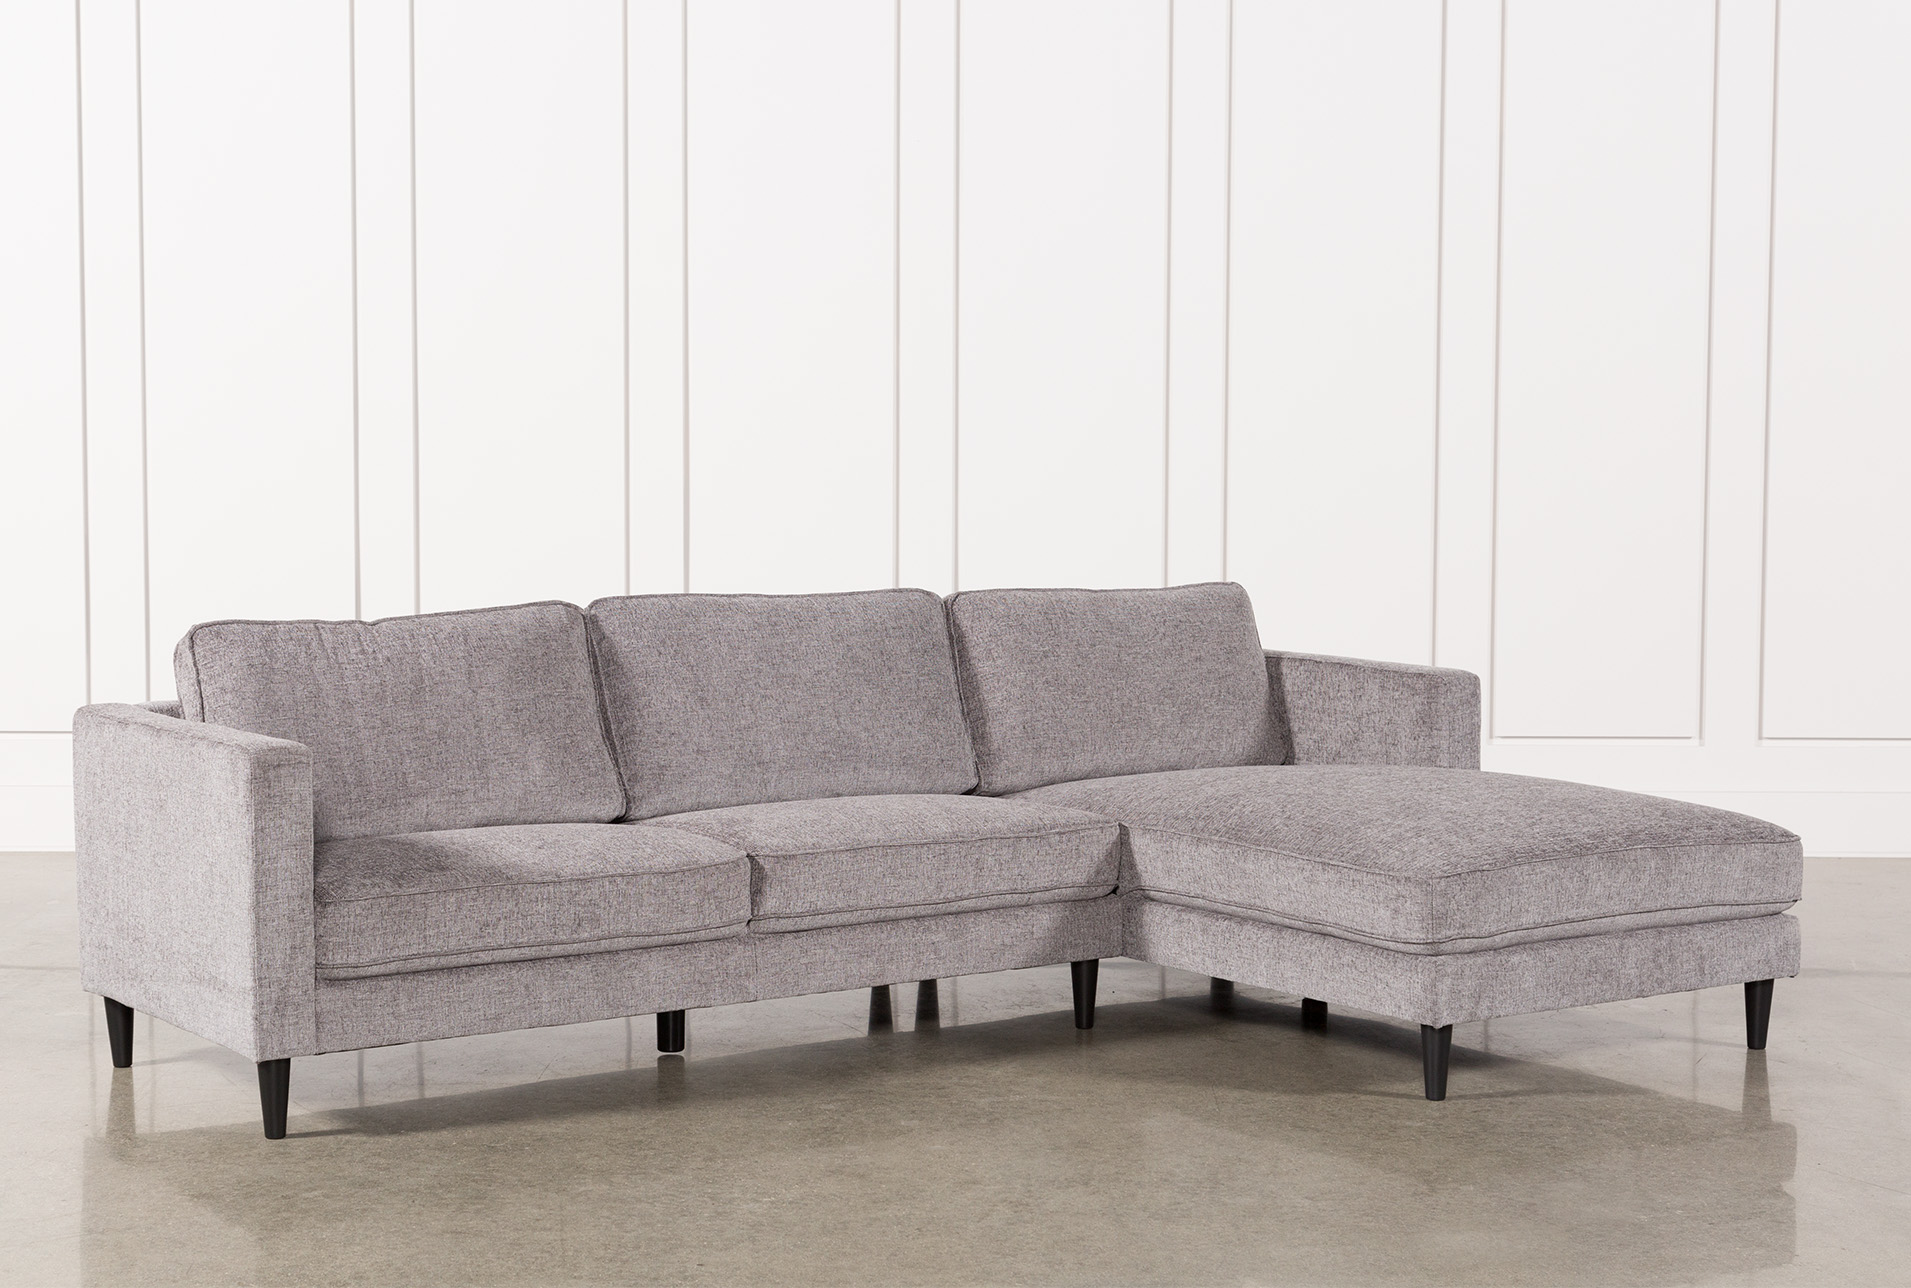 Cosmos Grey 2 Piece Sectional W/Raf Chaise (Qty: 1) Has Been Successfully  Added To Your Cart.